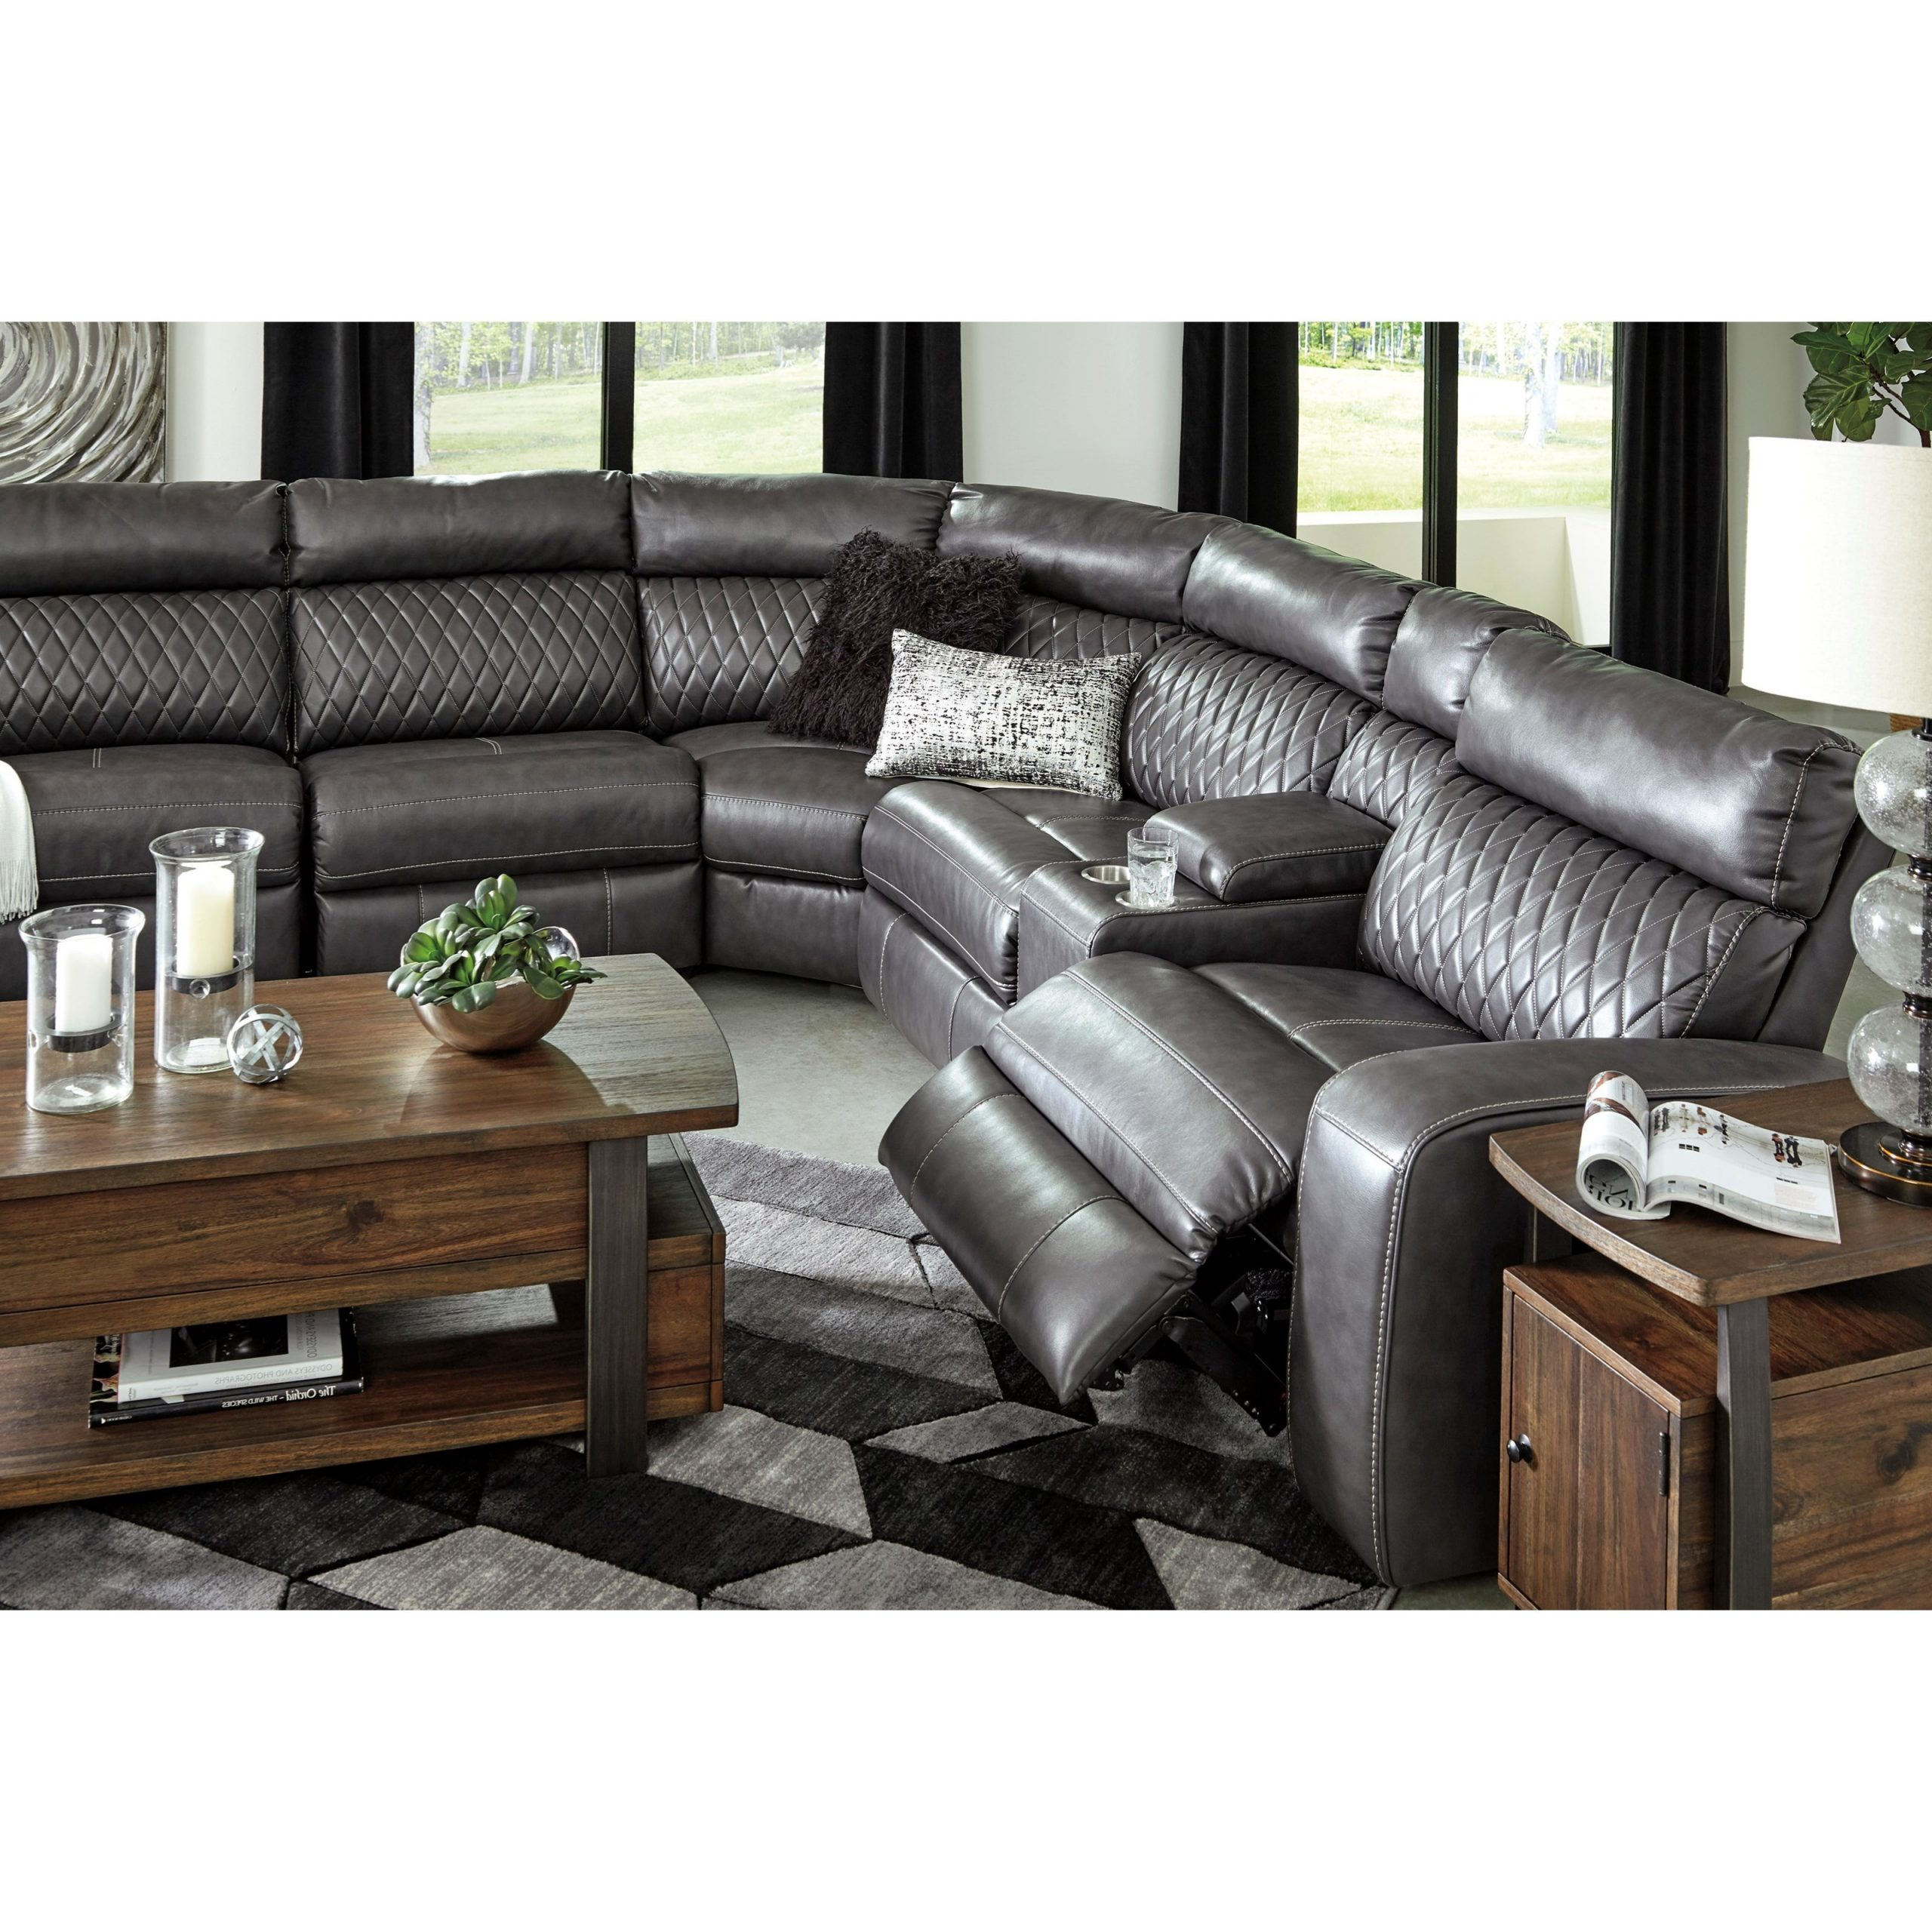 Fashionable Signature Designashley Samperstone Transitional Power In Celine Sectional Futon Sofas With Storage Reclining Couch (View 17 of 20)